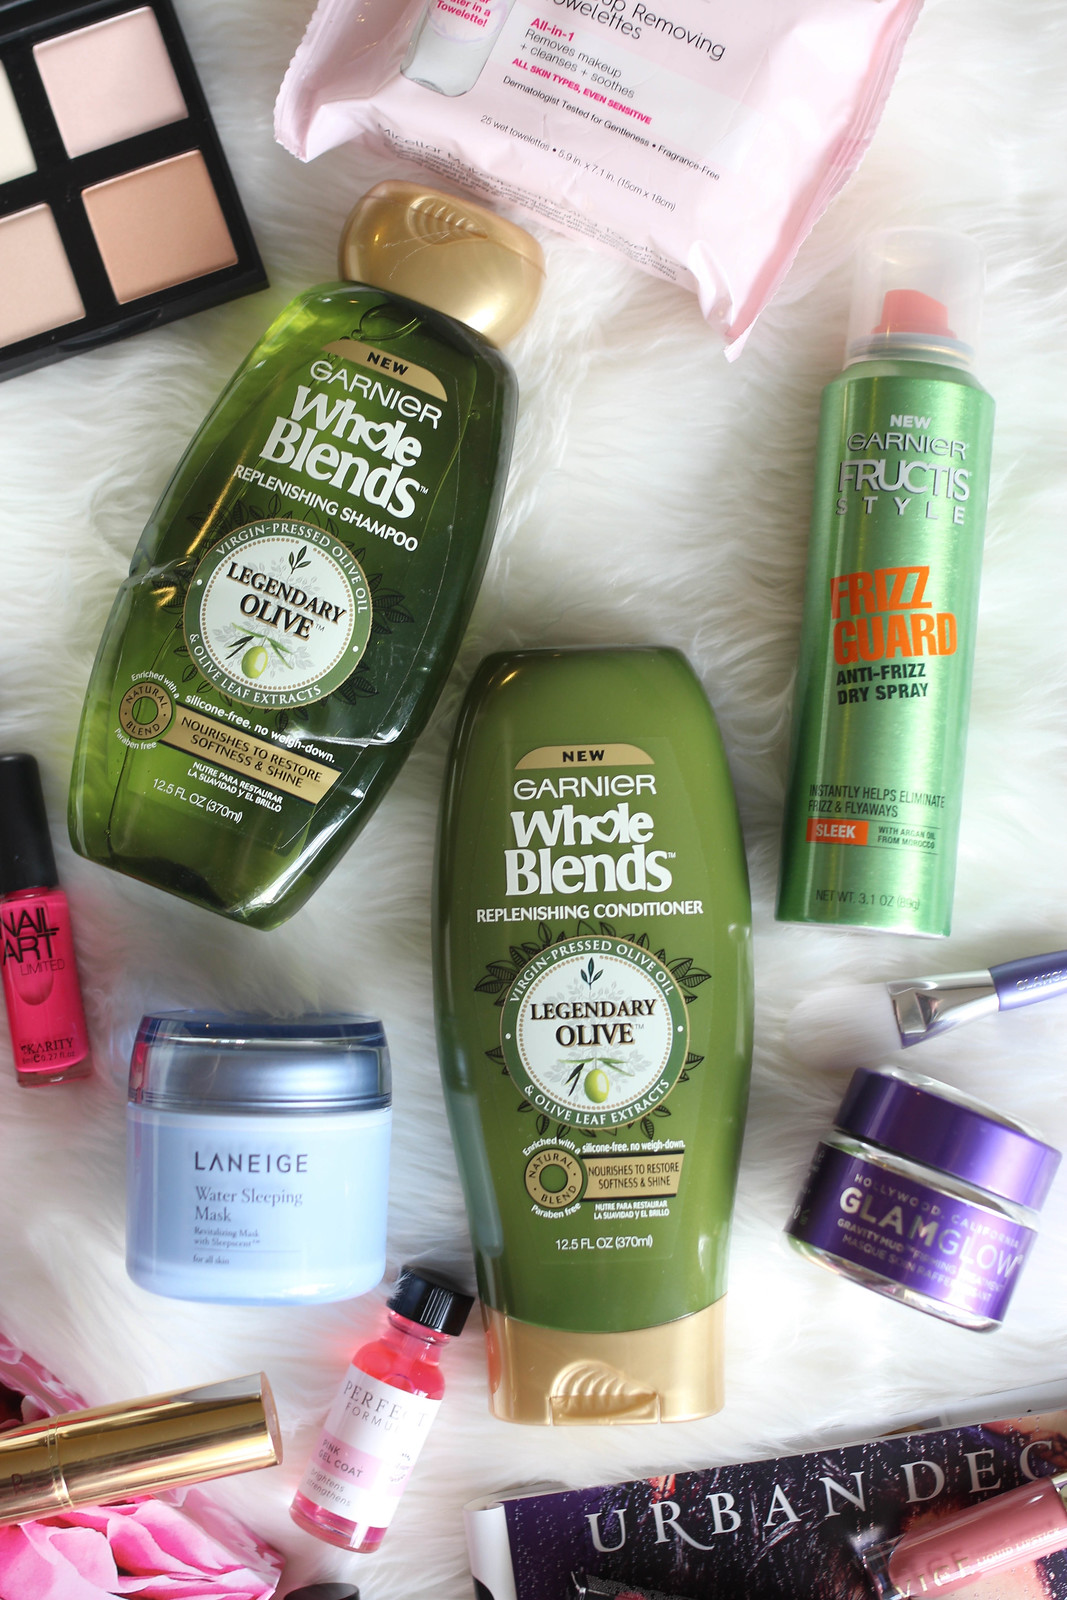 Garnier Whole Blends Legendary Olive Replenishing Shampoo and Conditioner Living After Midnite February Beauty Essentials